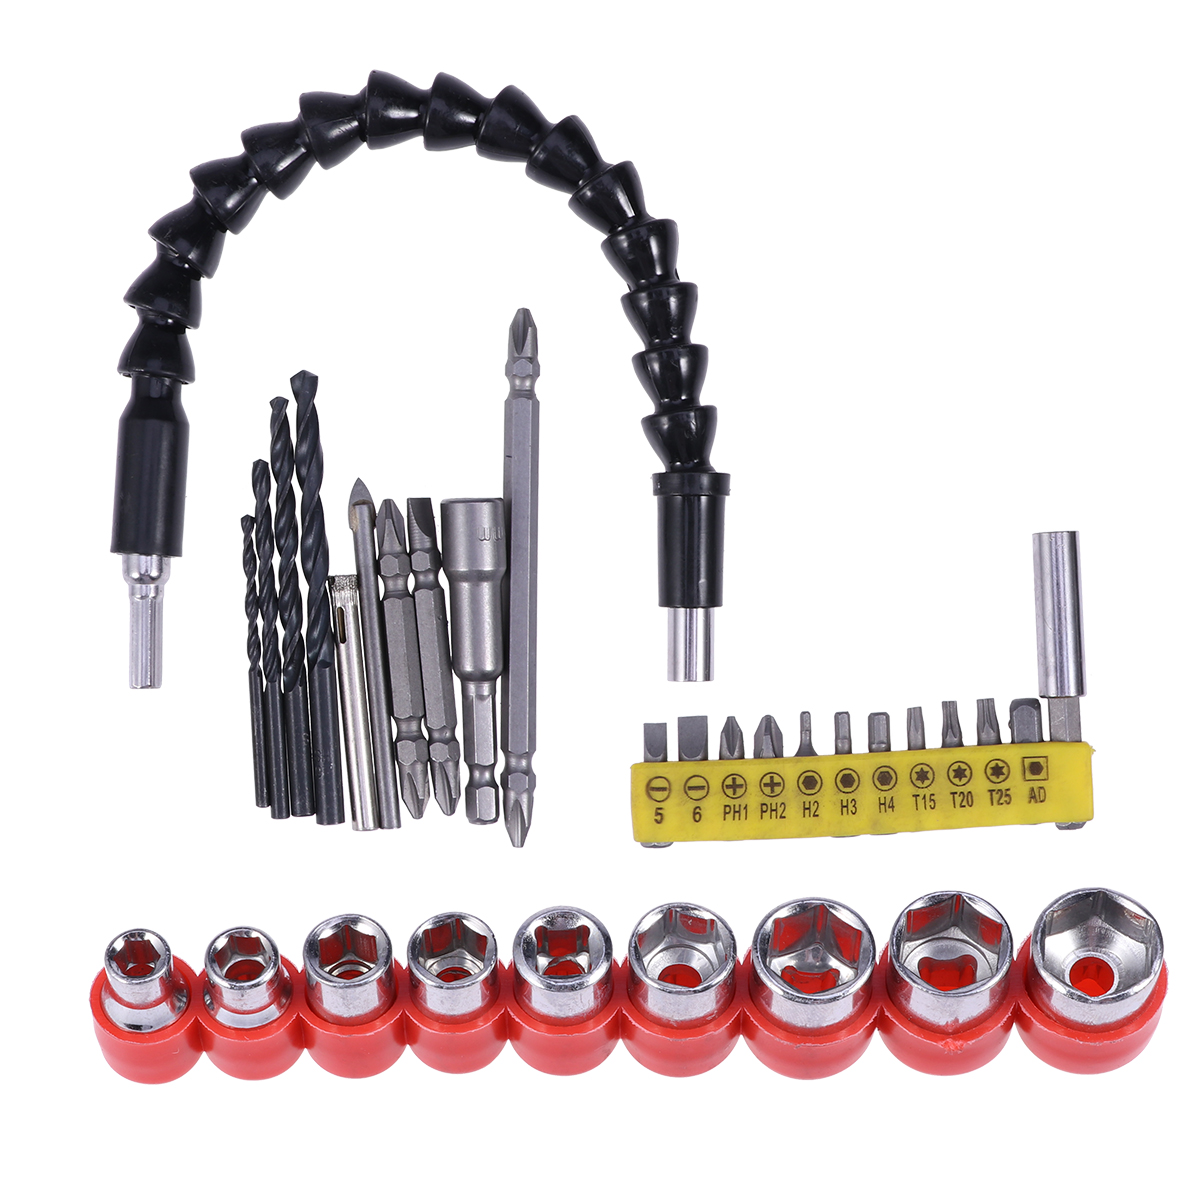 32 Pcs Hardware Accessories Flexible Shaft Screwdriver Bit Sets Metal Screwdriver Extension Kits For Car Maintenance